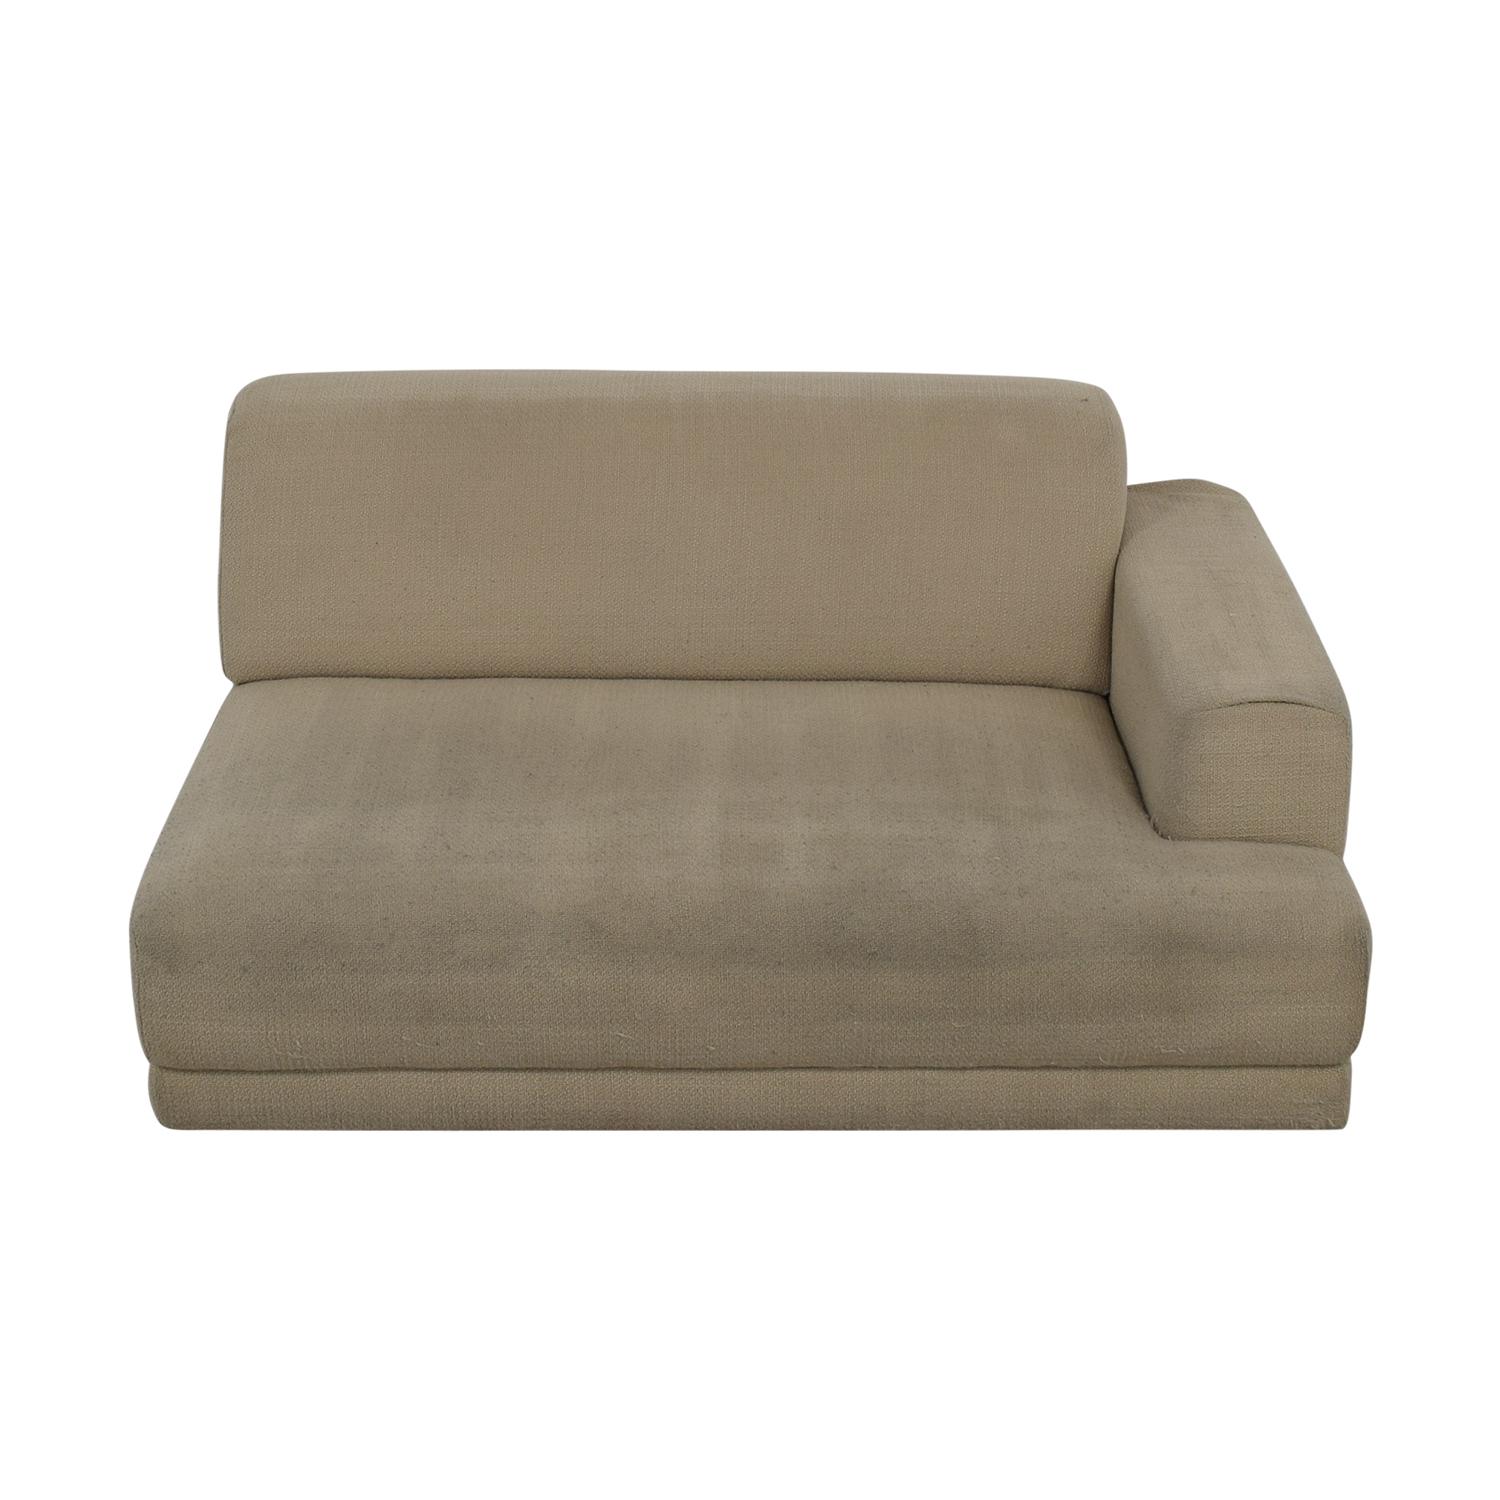 Crate & Barrel Crate & Barrel Beige One Armed Chaise Sofa nyc